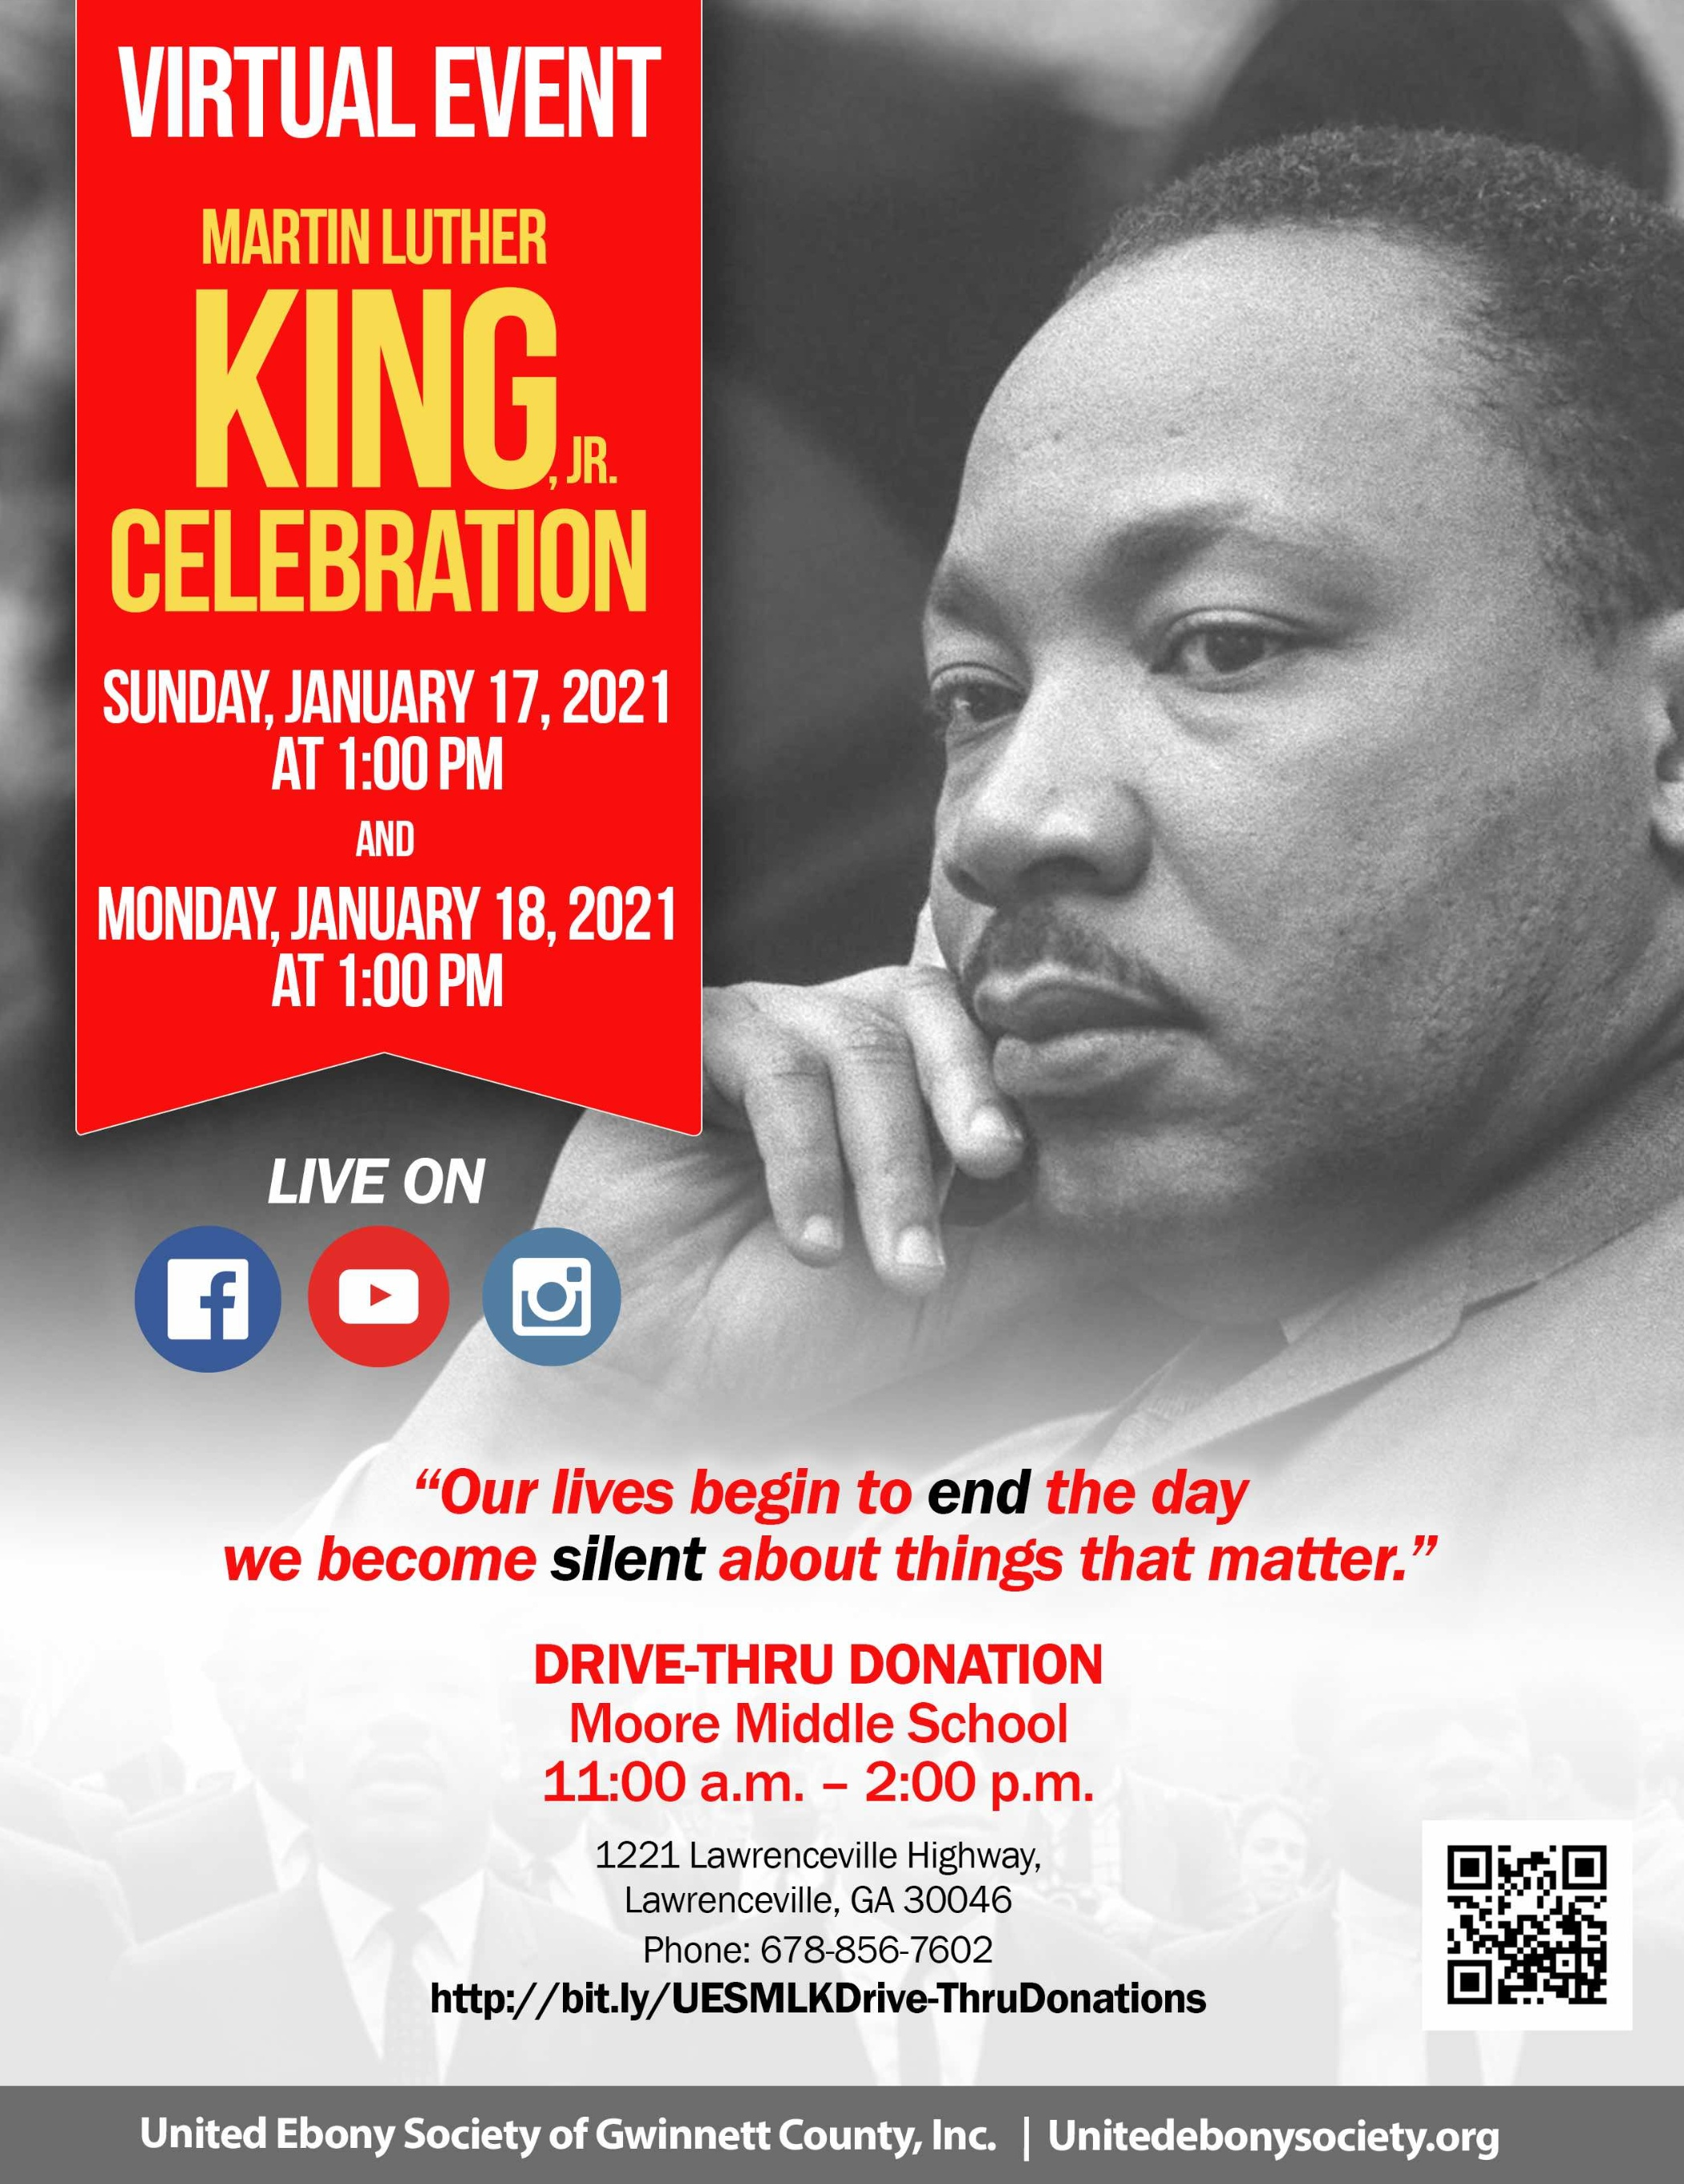 Martin Luther King Jr. Celebration